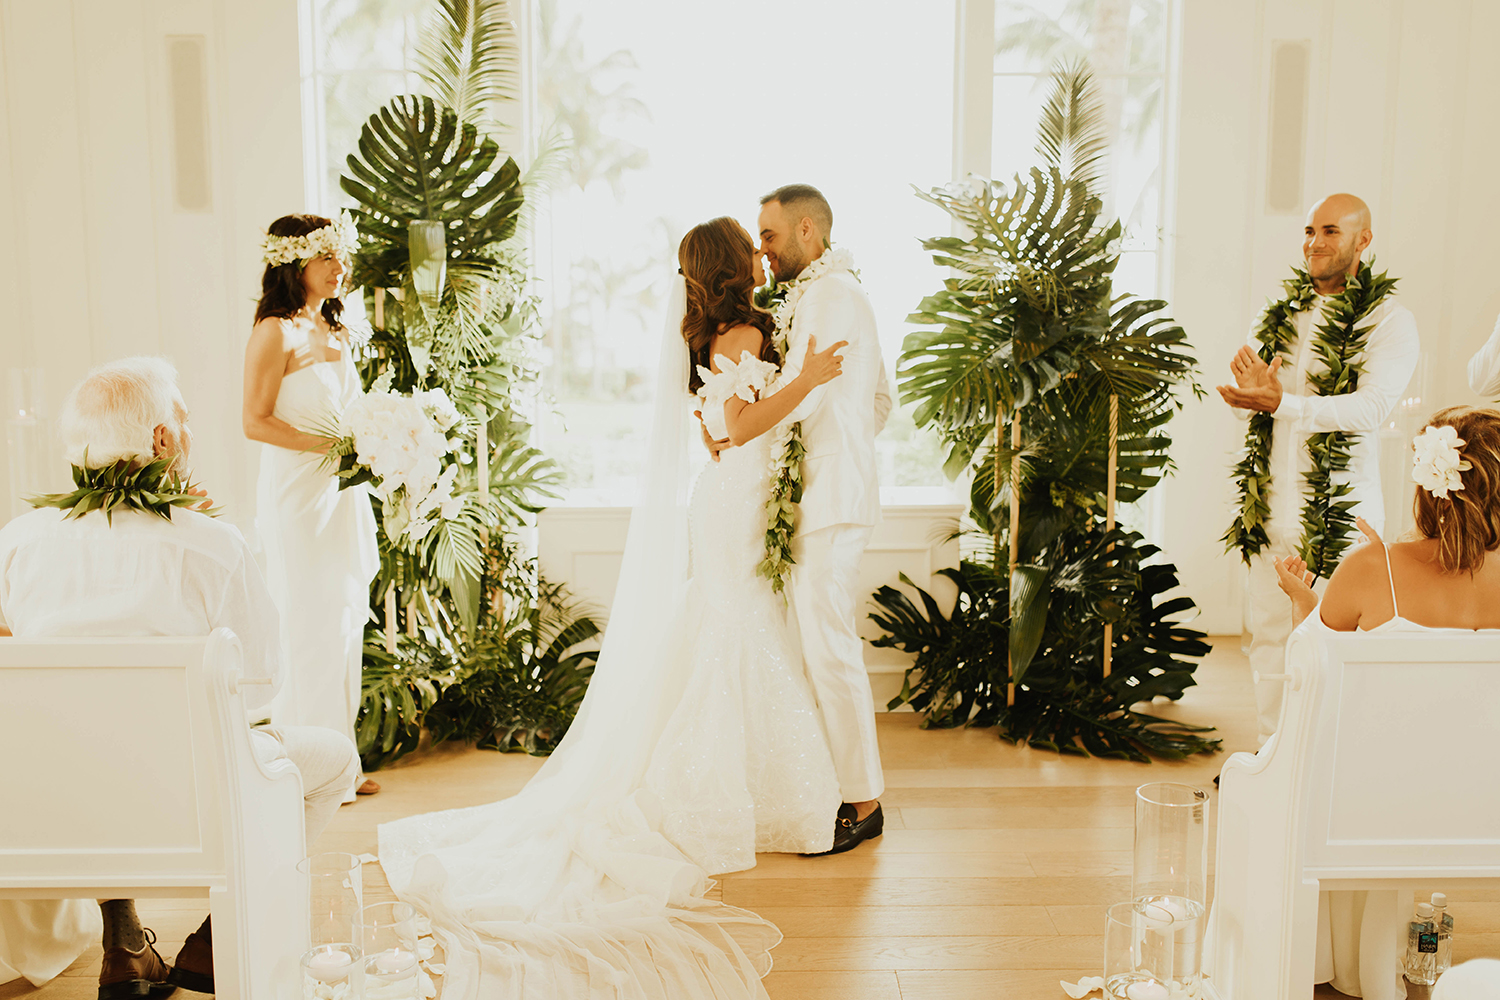 Jessi Malay Wedding Alter Decor Inspiration